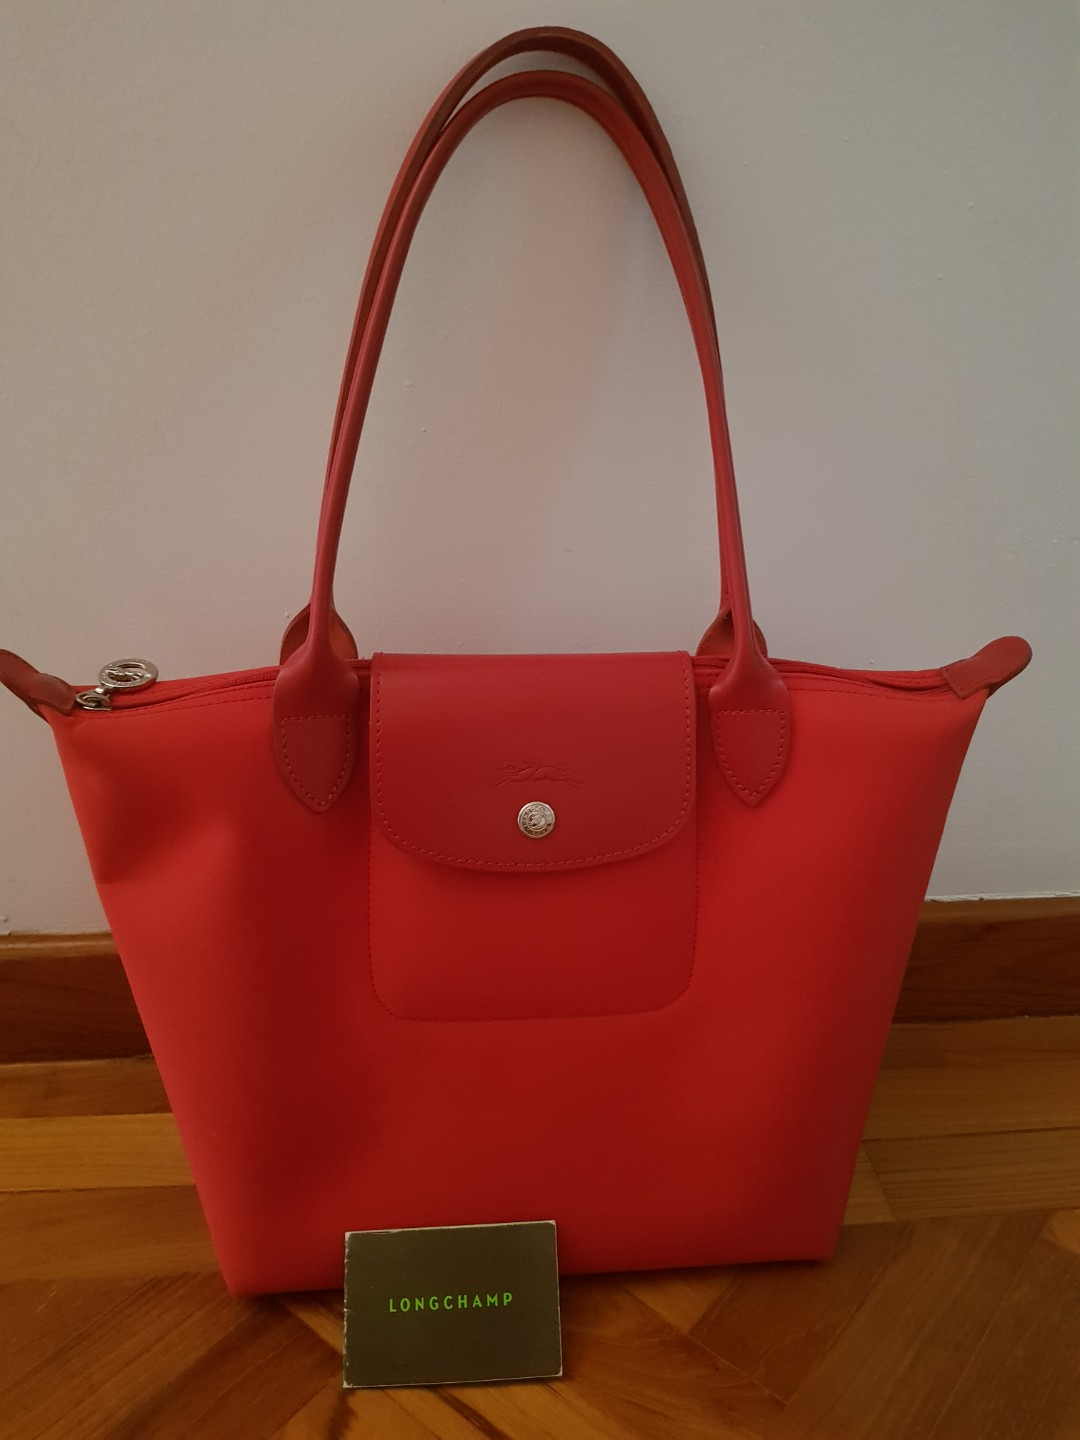 Longchamp Bag Authentic 9b91dcd7e323f